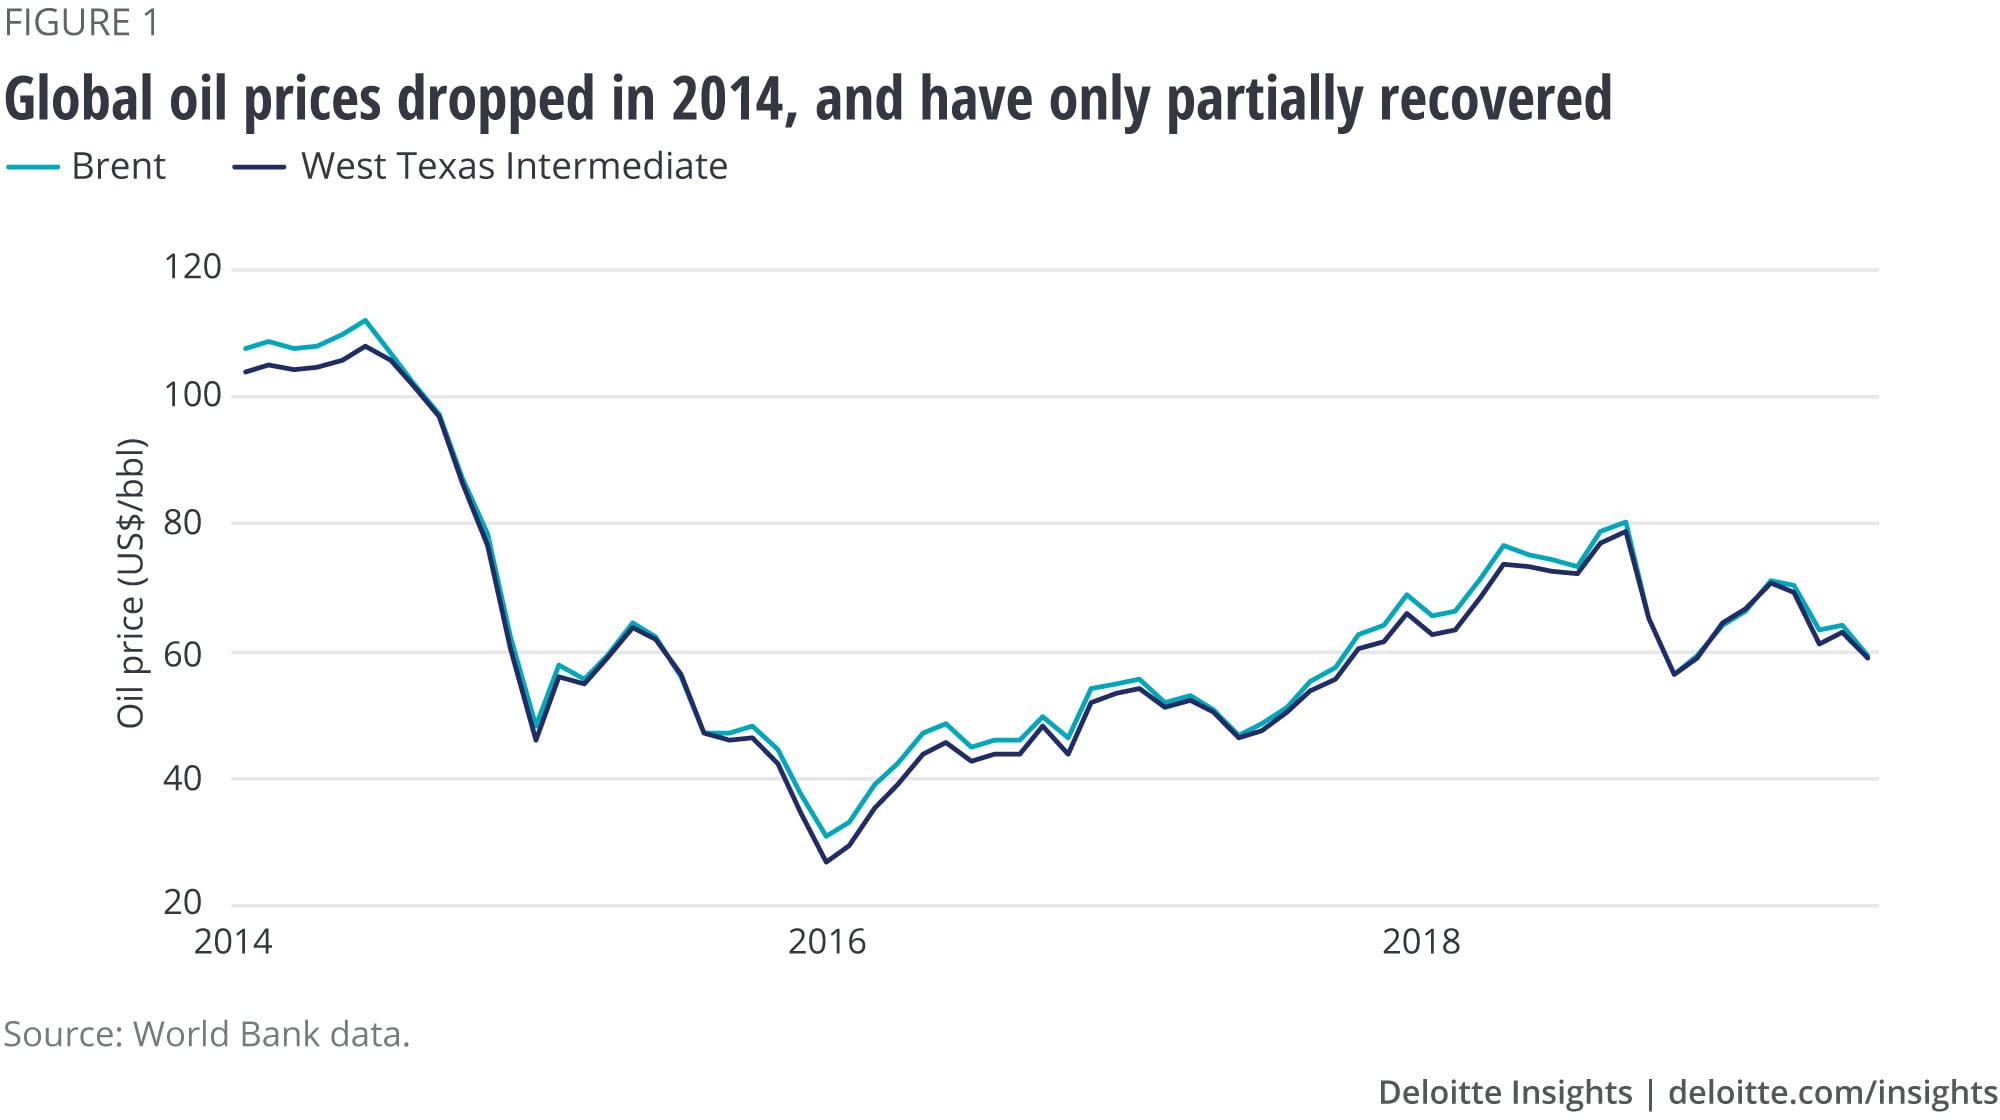 Global oil prices dropped in 2014, and have only partially recovered